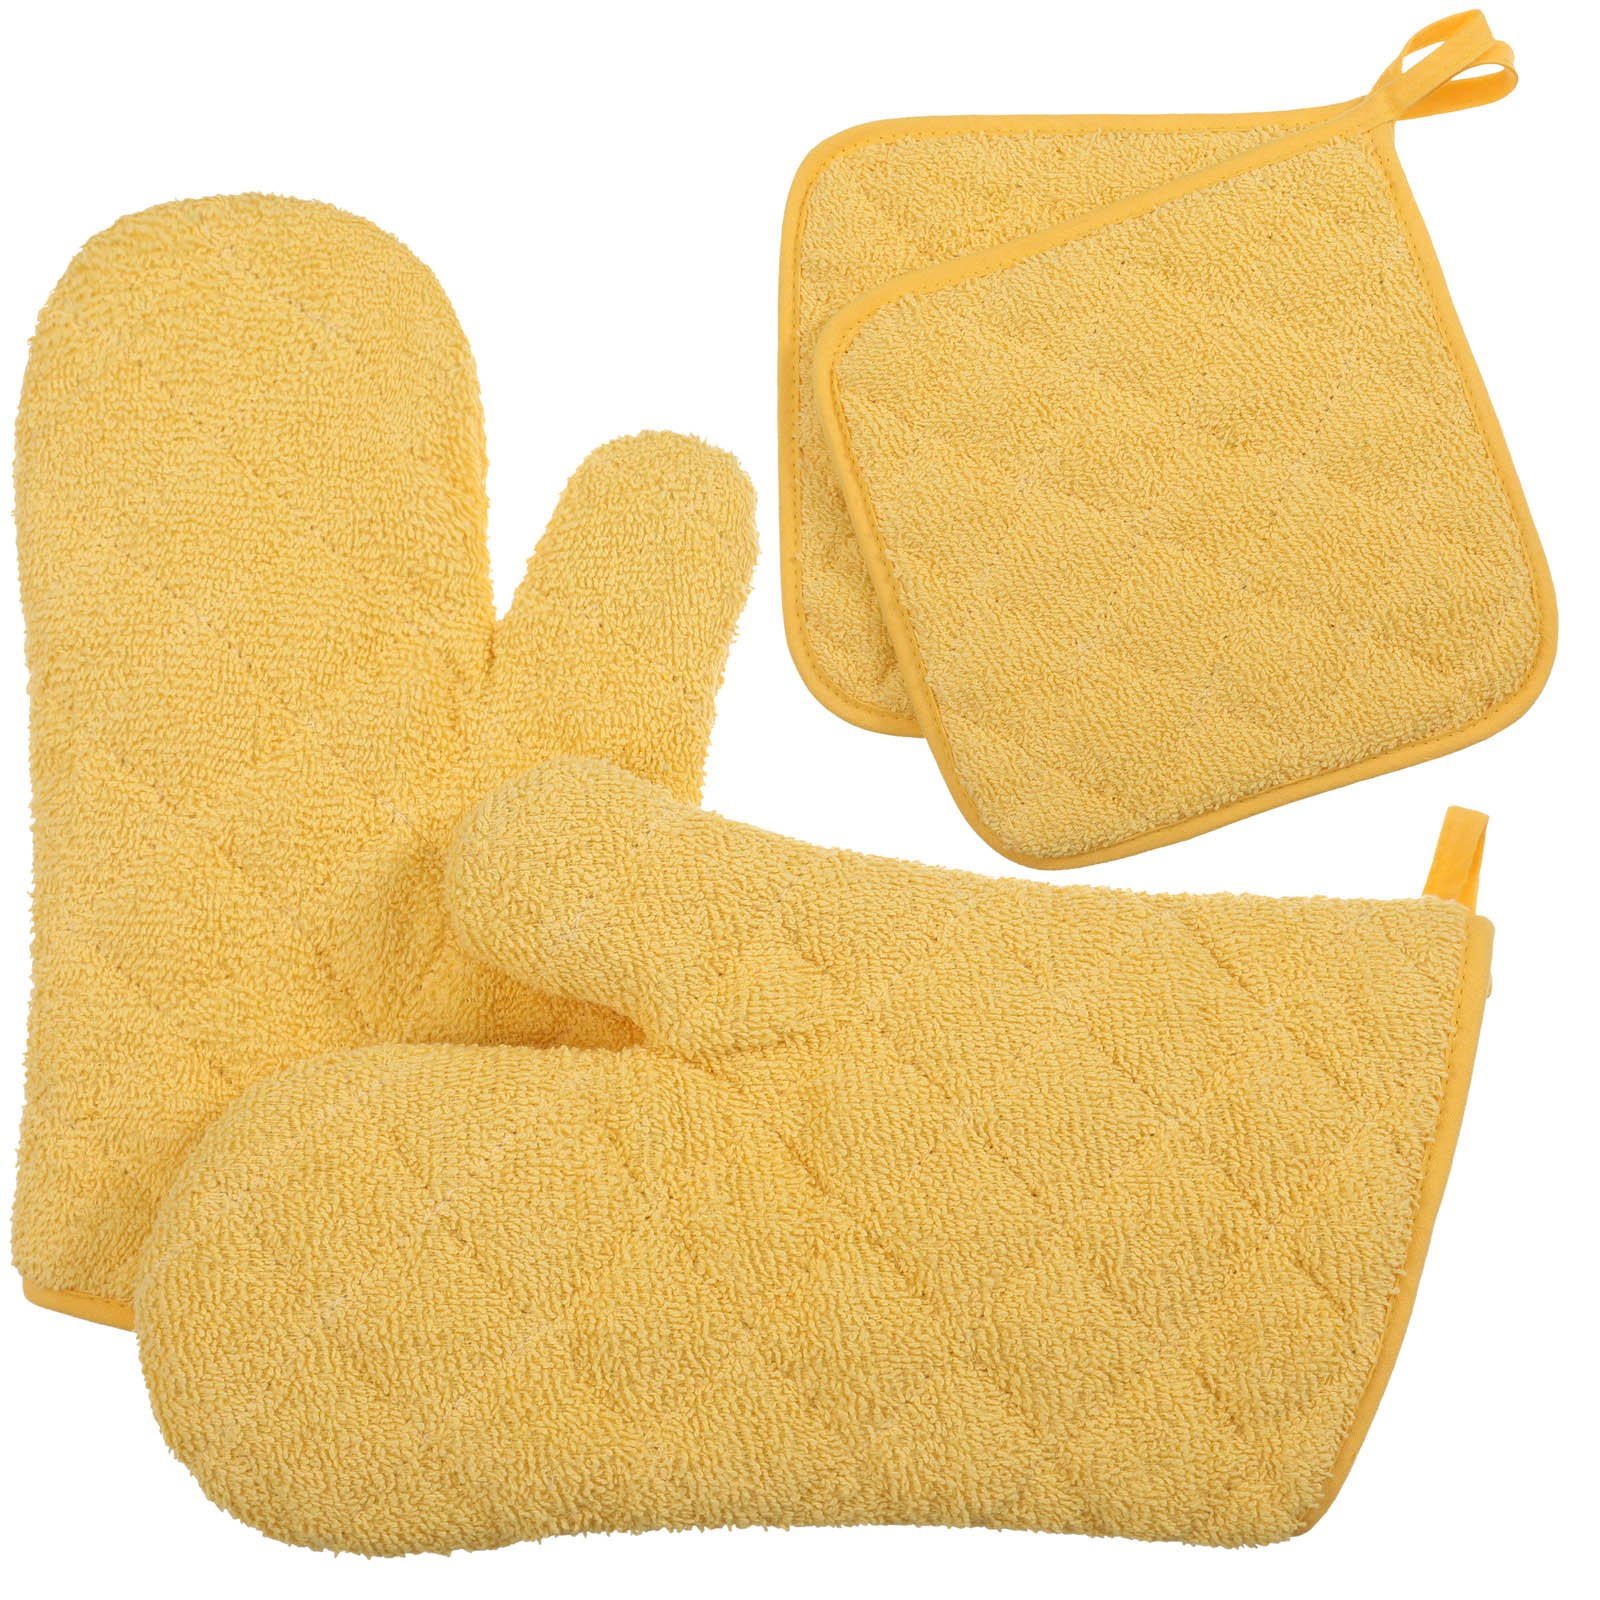 VEEYOO Cotton Oven Mitts Pot Holder Set Quilted Trivet Mats Kitchen Heat Resistant for Cooking Baking, Yellow